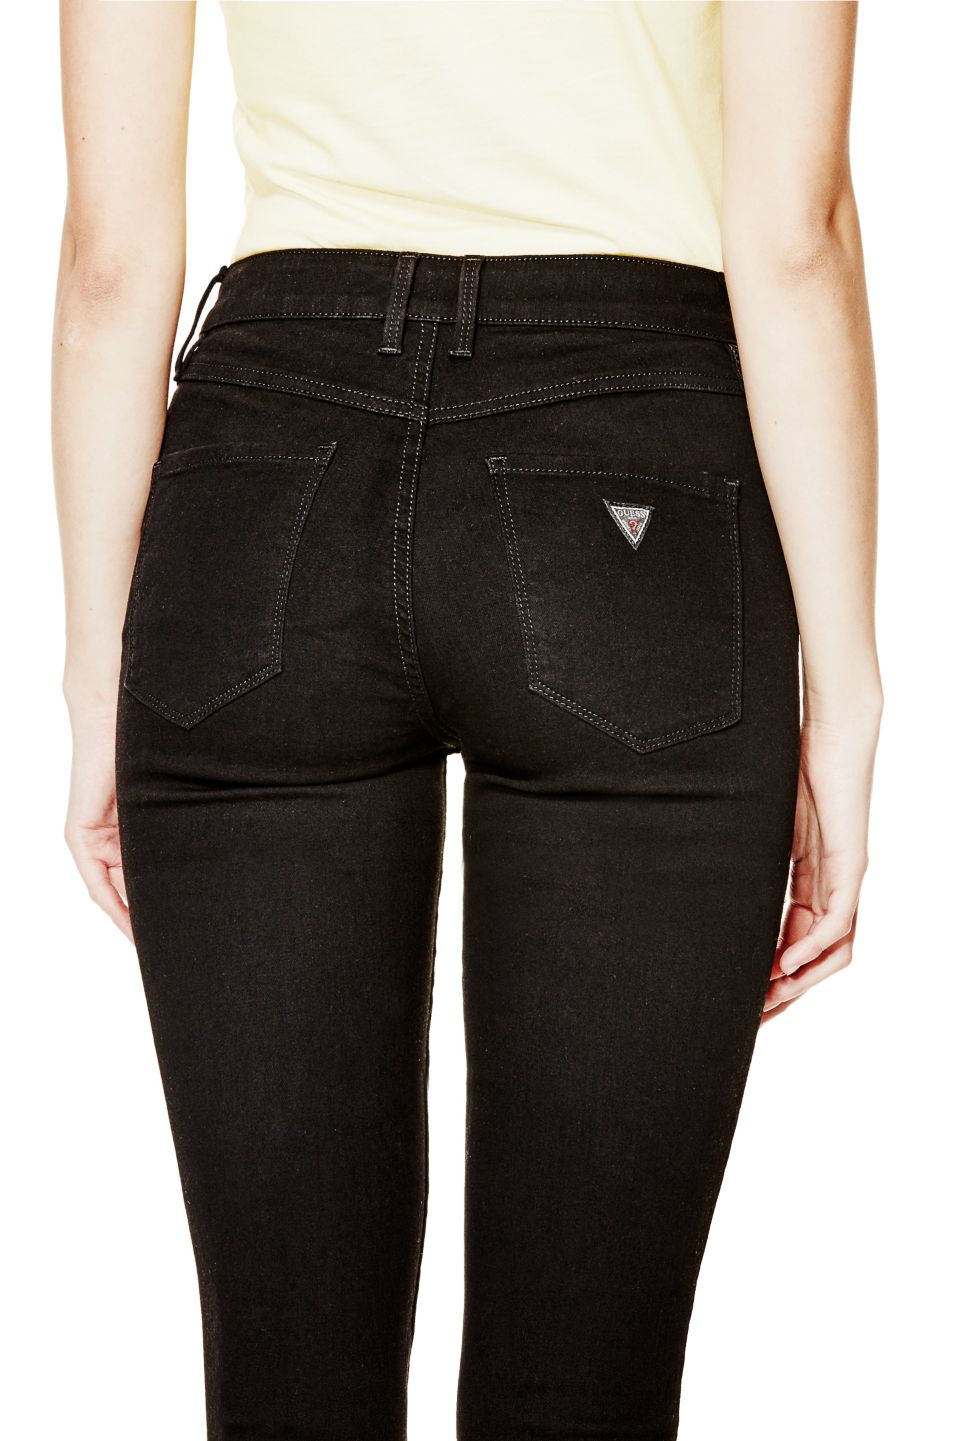 6a1d56879 1981 High-Rise Skinny Jeans with Black Silicone Rinse | GUESS.com ...